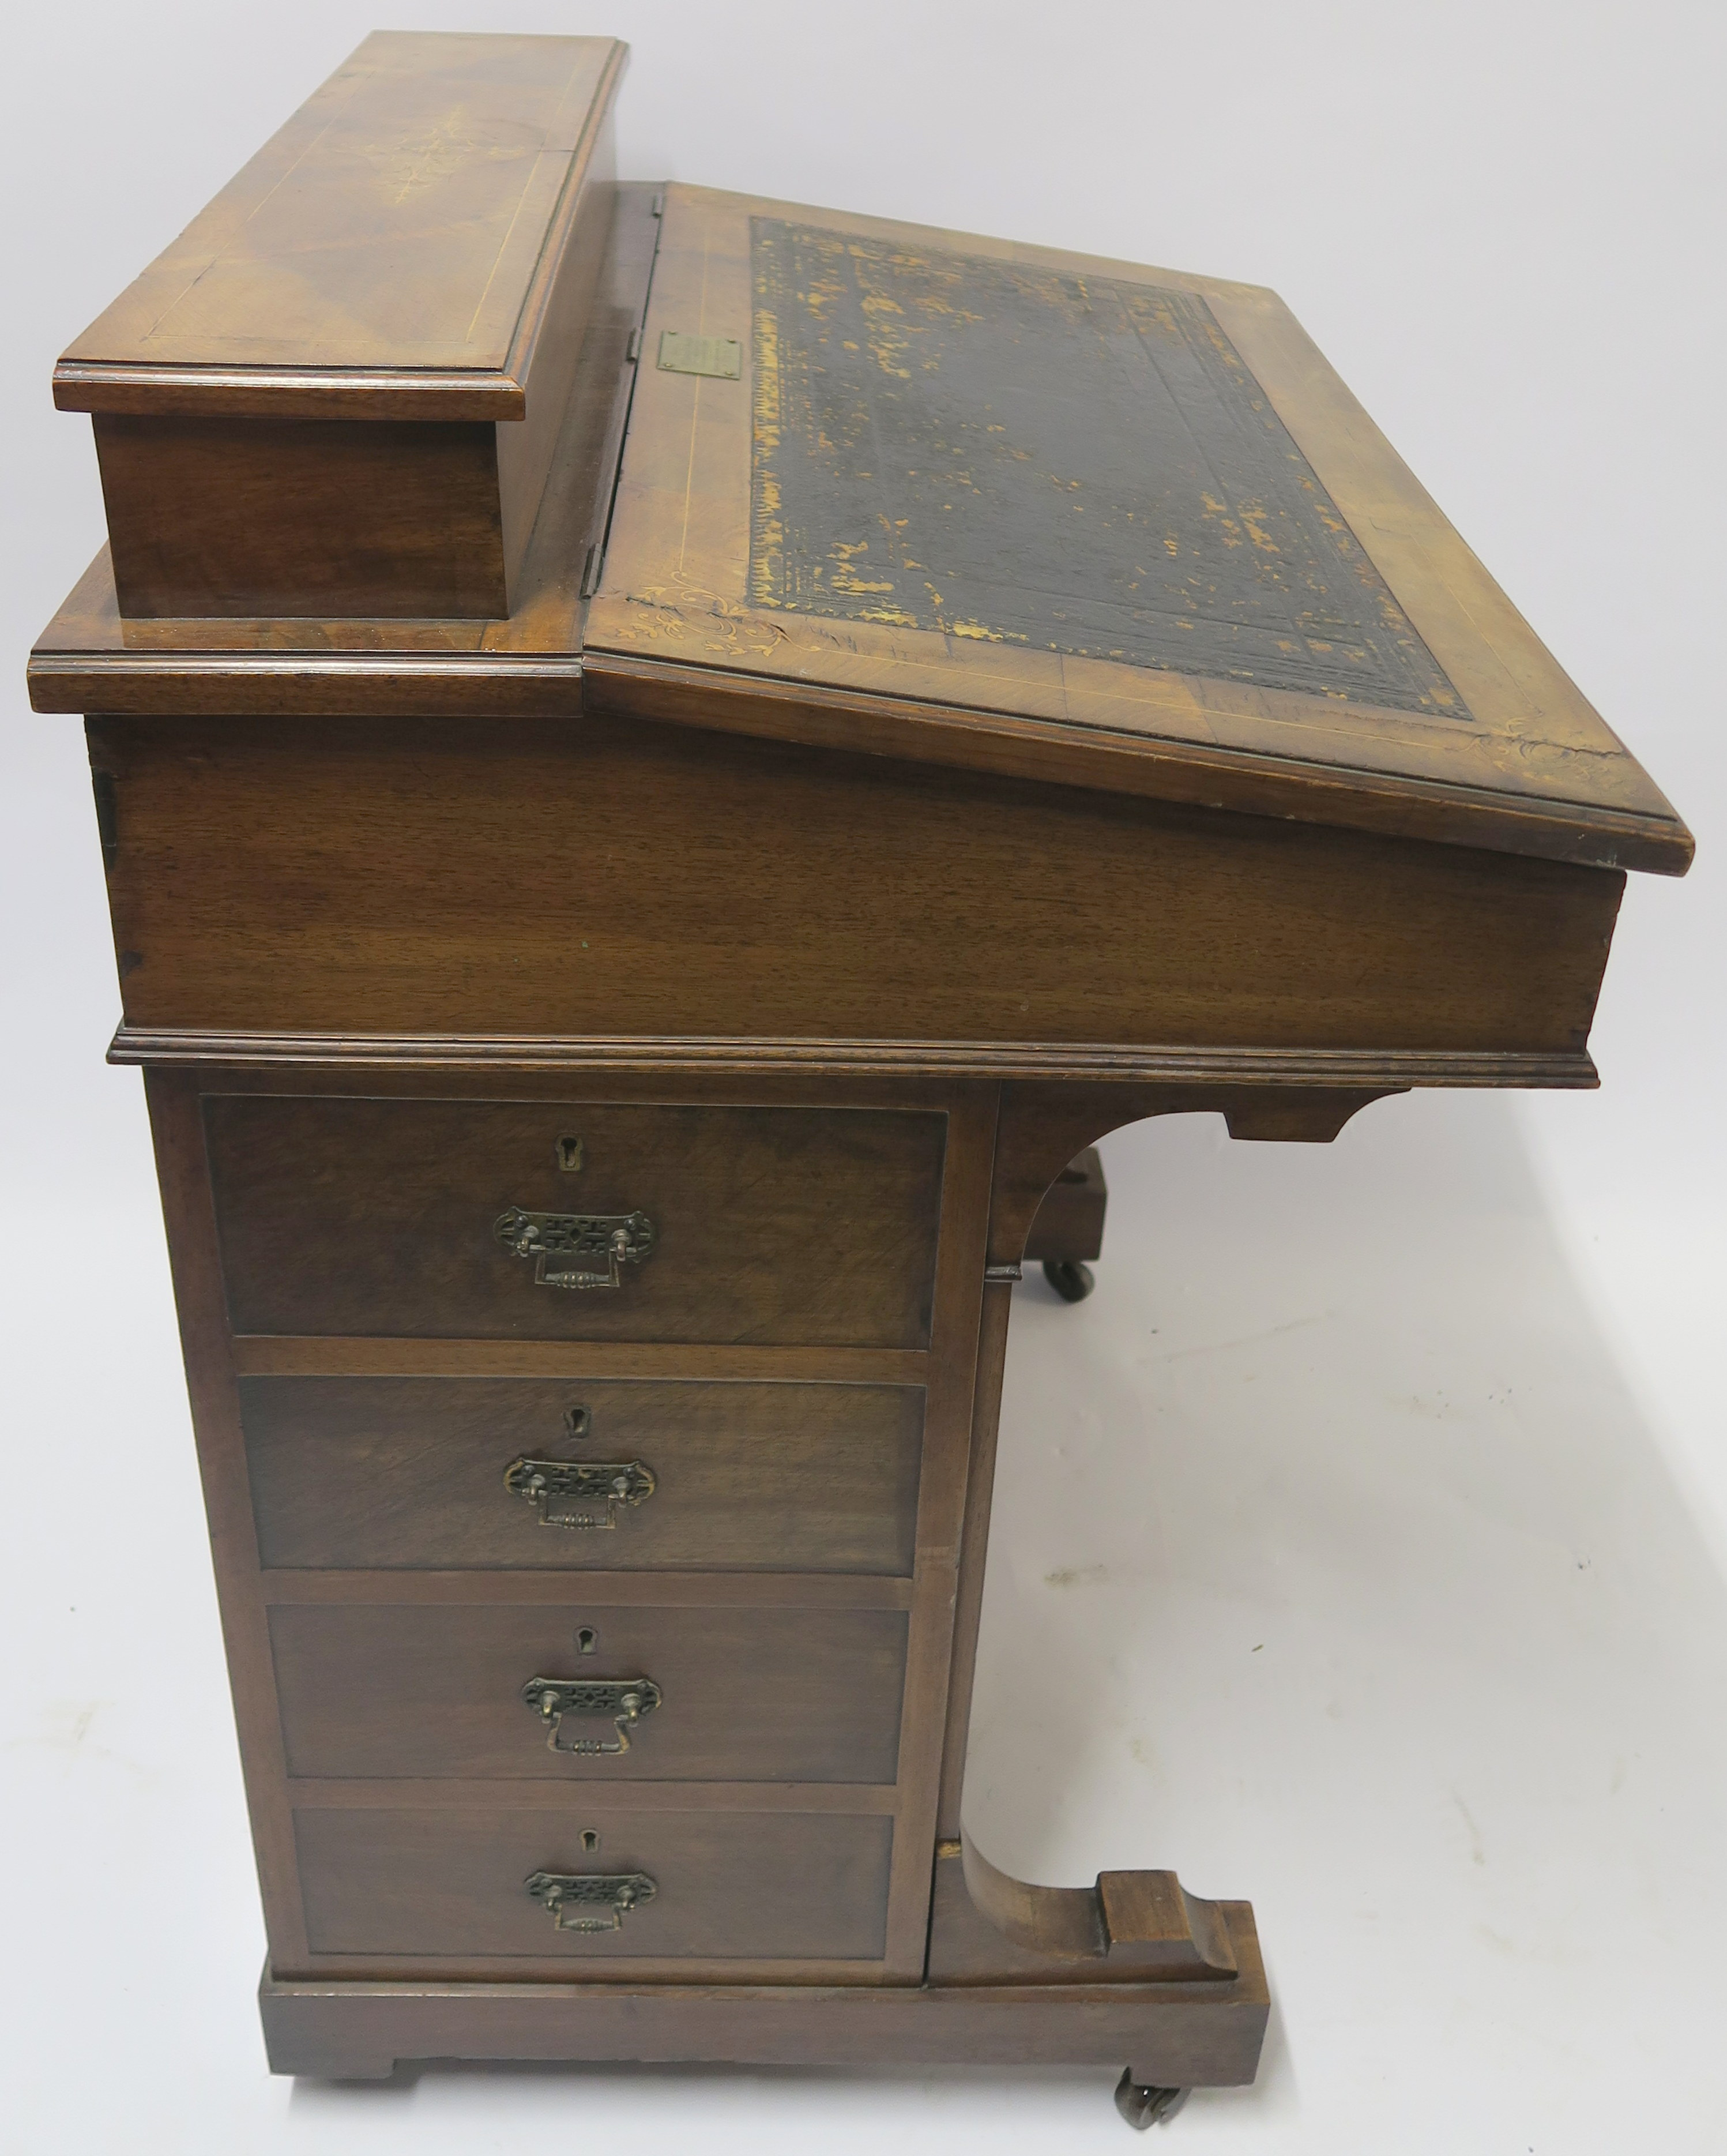 A VICTORIAN INLAID WALNUT DAVENPORT of standard design with four drawers 95cm high, 75cm wide and - Image 6 of 9